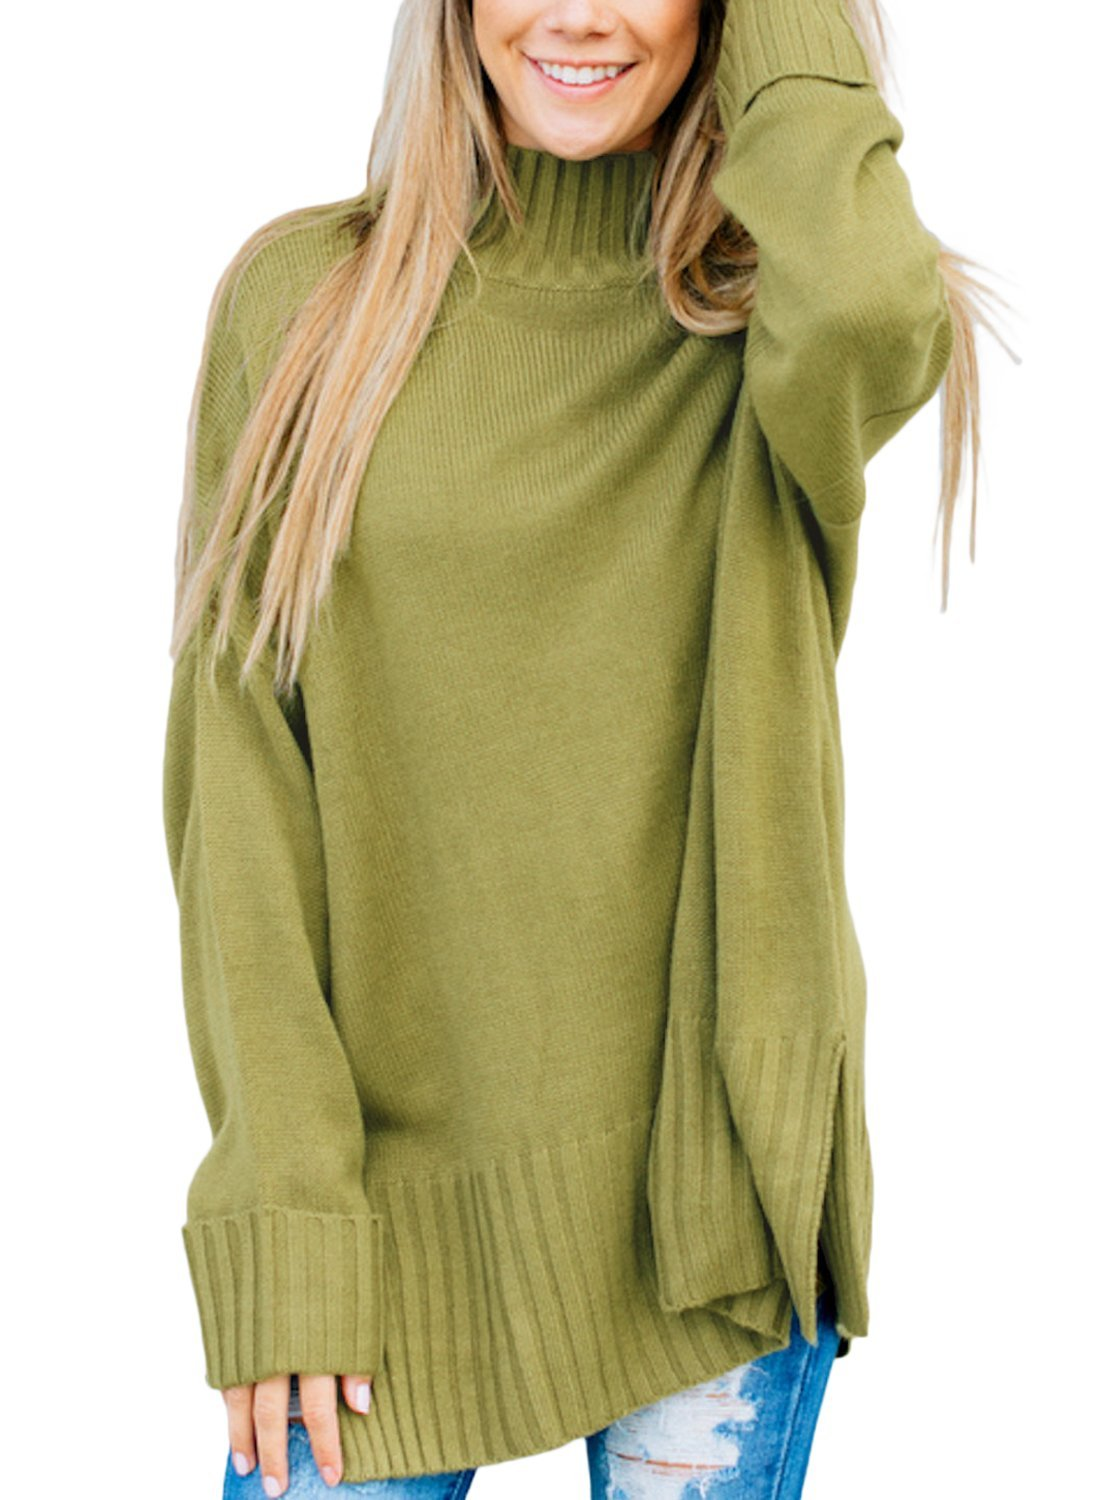 Dokotoo Womens Pullover Winter Fall Warm Basic Solid Loose Oversized Long Cuffed Sleeve Casual High Neck Knit Sweater Pullover Top Large